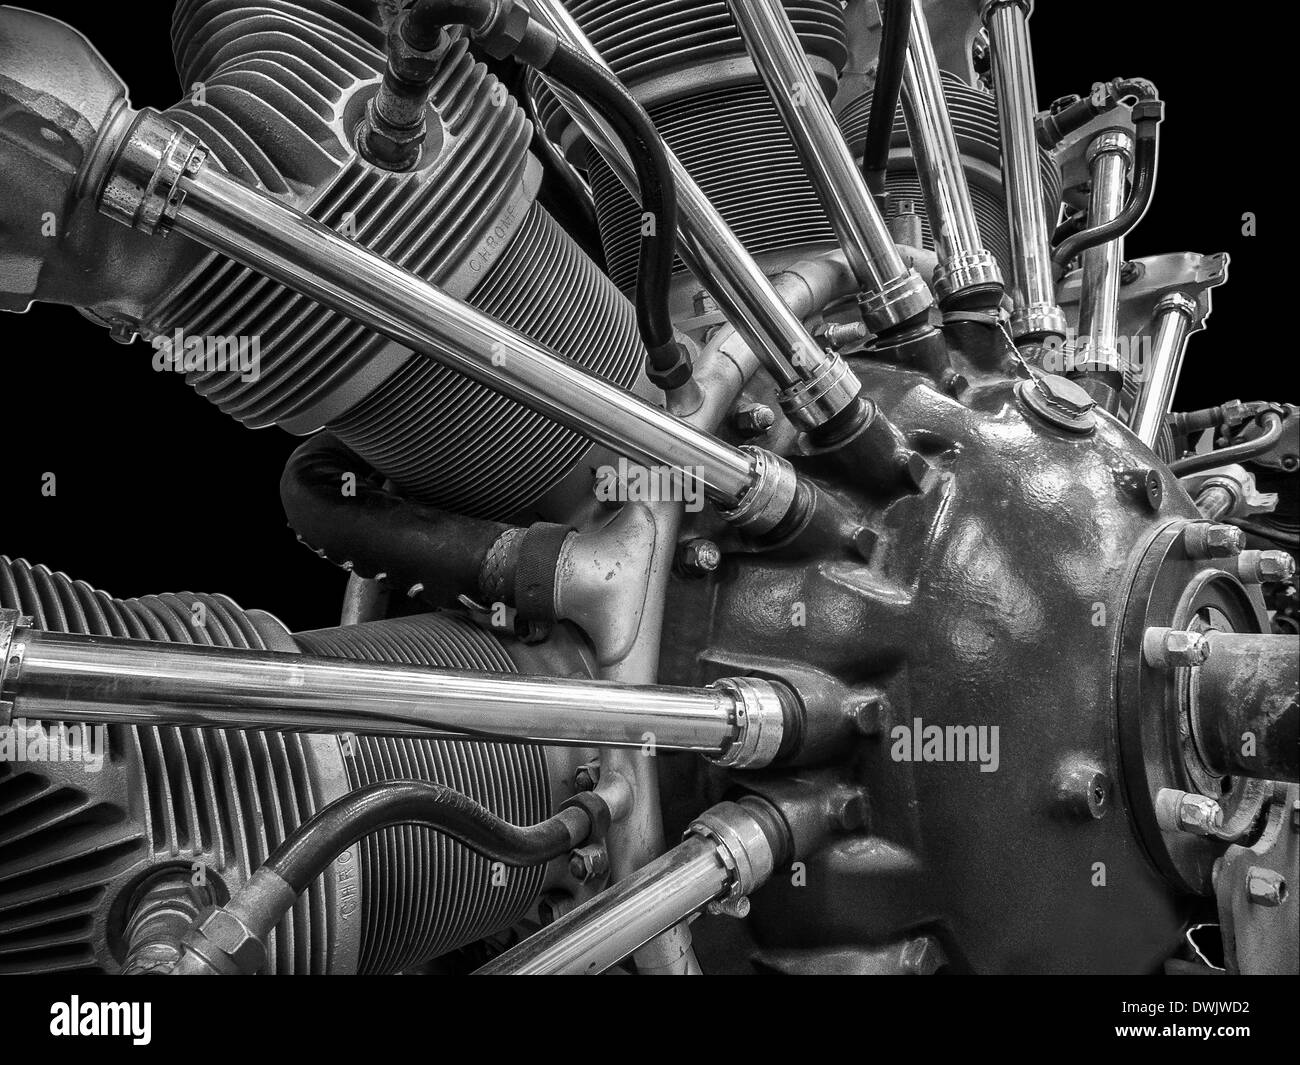 An editorial style black And white image of a1900's radial aircraft engine Stock Photo